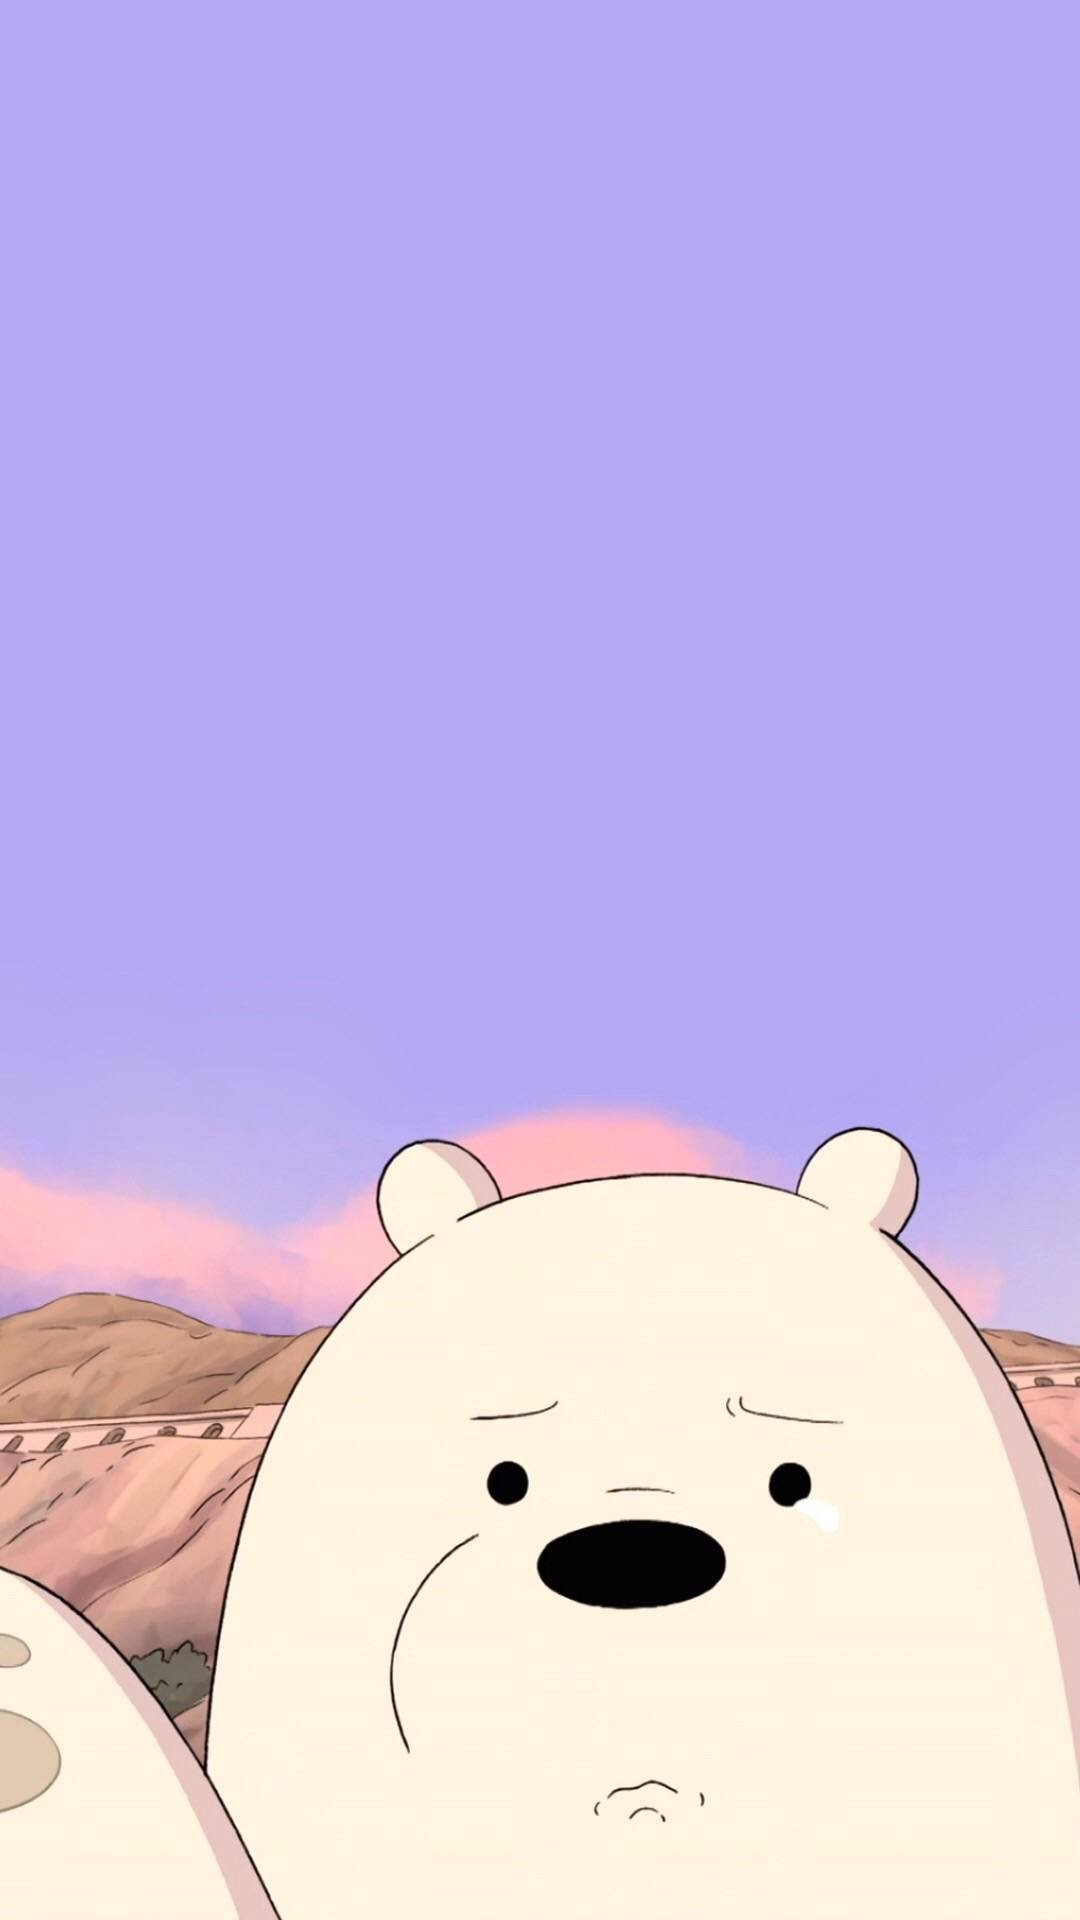 We Bare Bears, Phone Wallpapers, Cellphone Wallpaper, Cartoon Characters,  Wall Papers, Cartoons, Adventure, Background, Screen